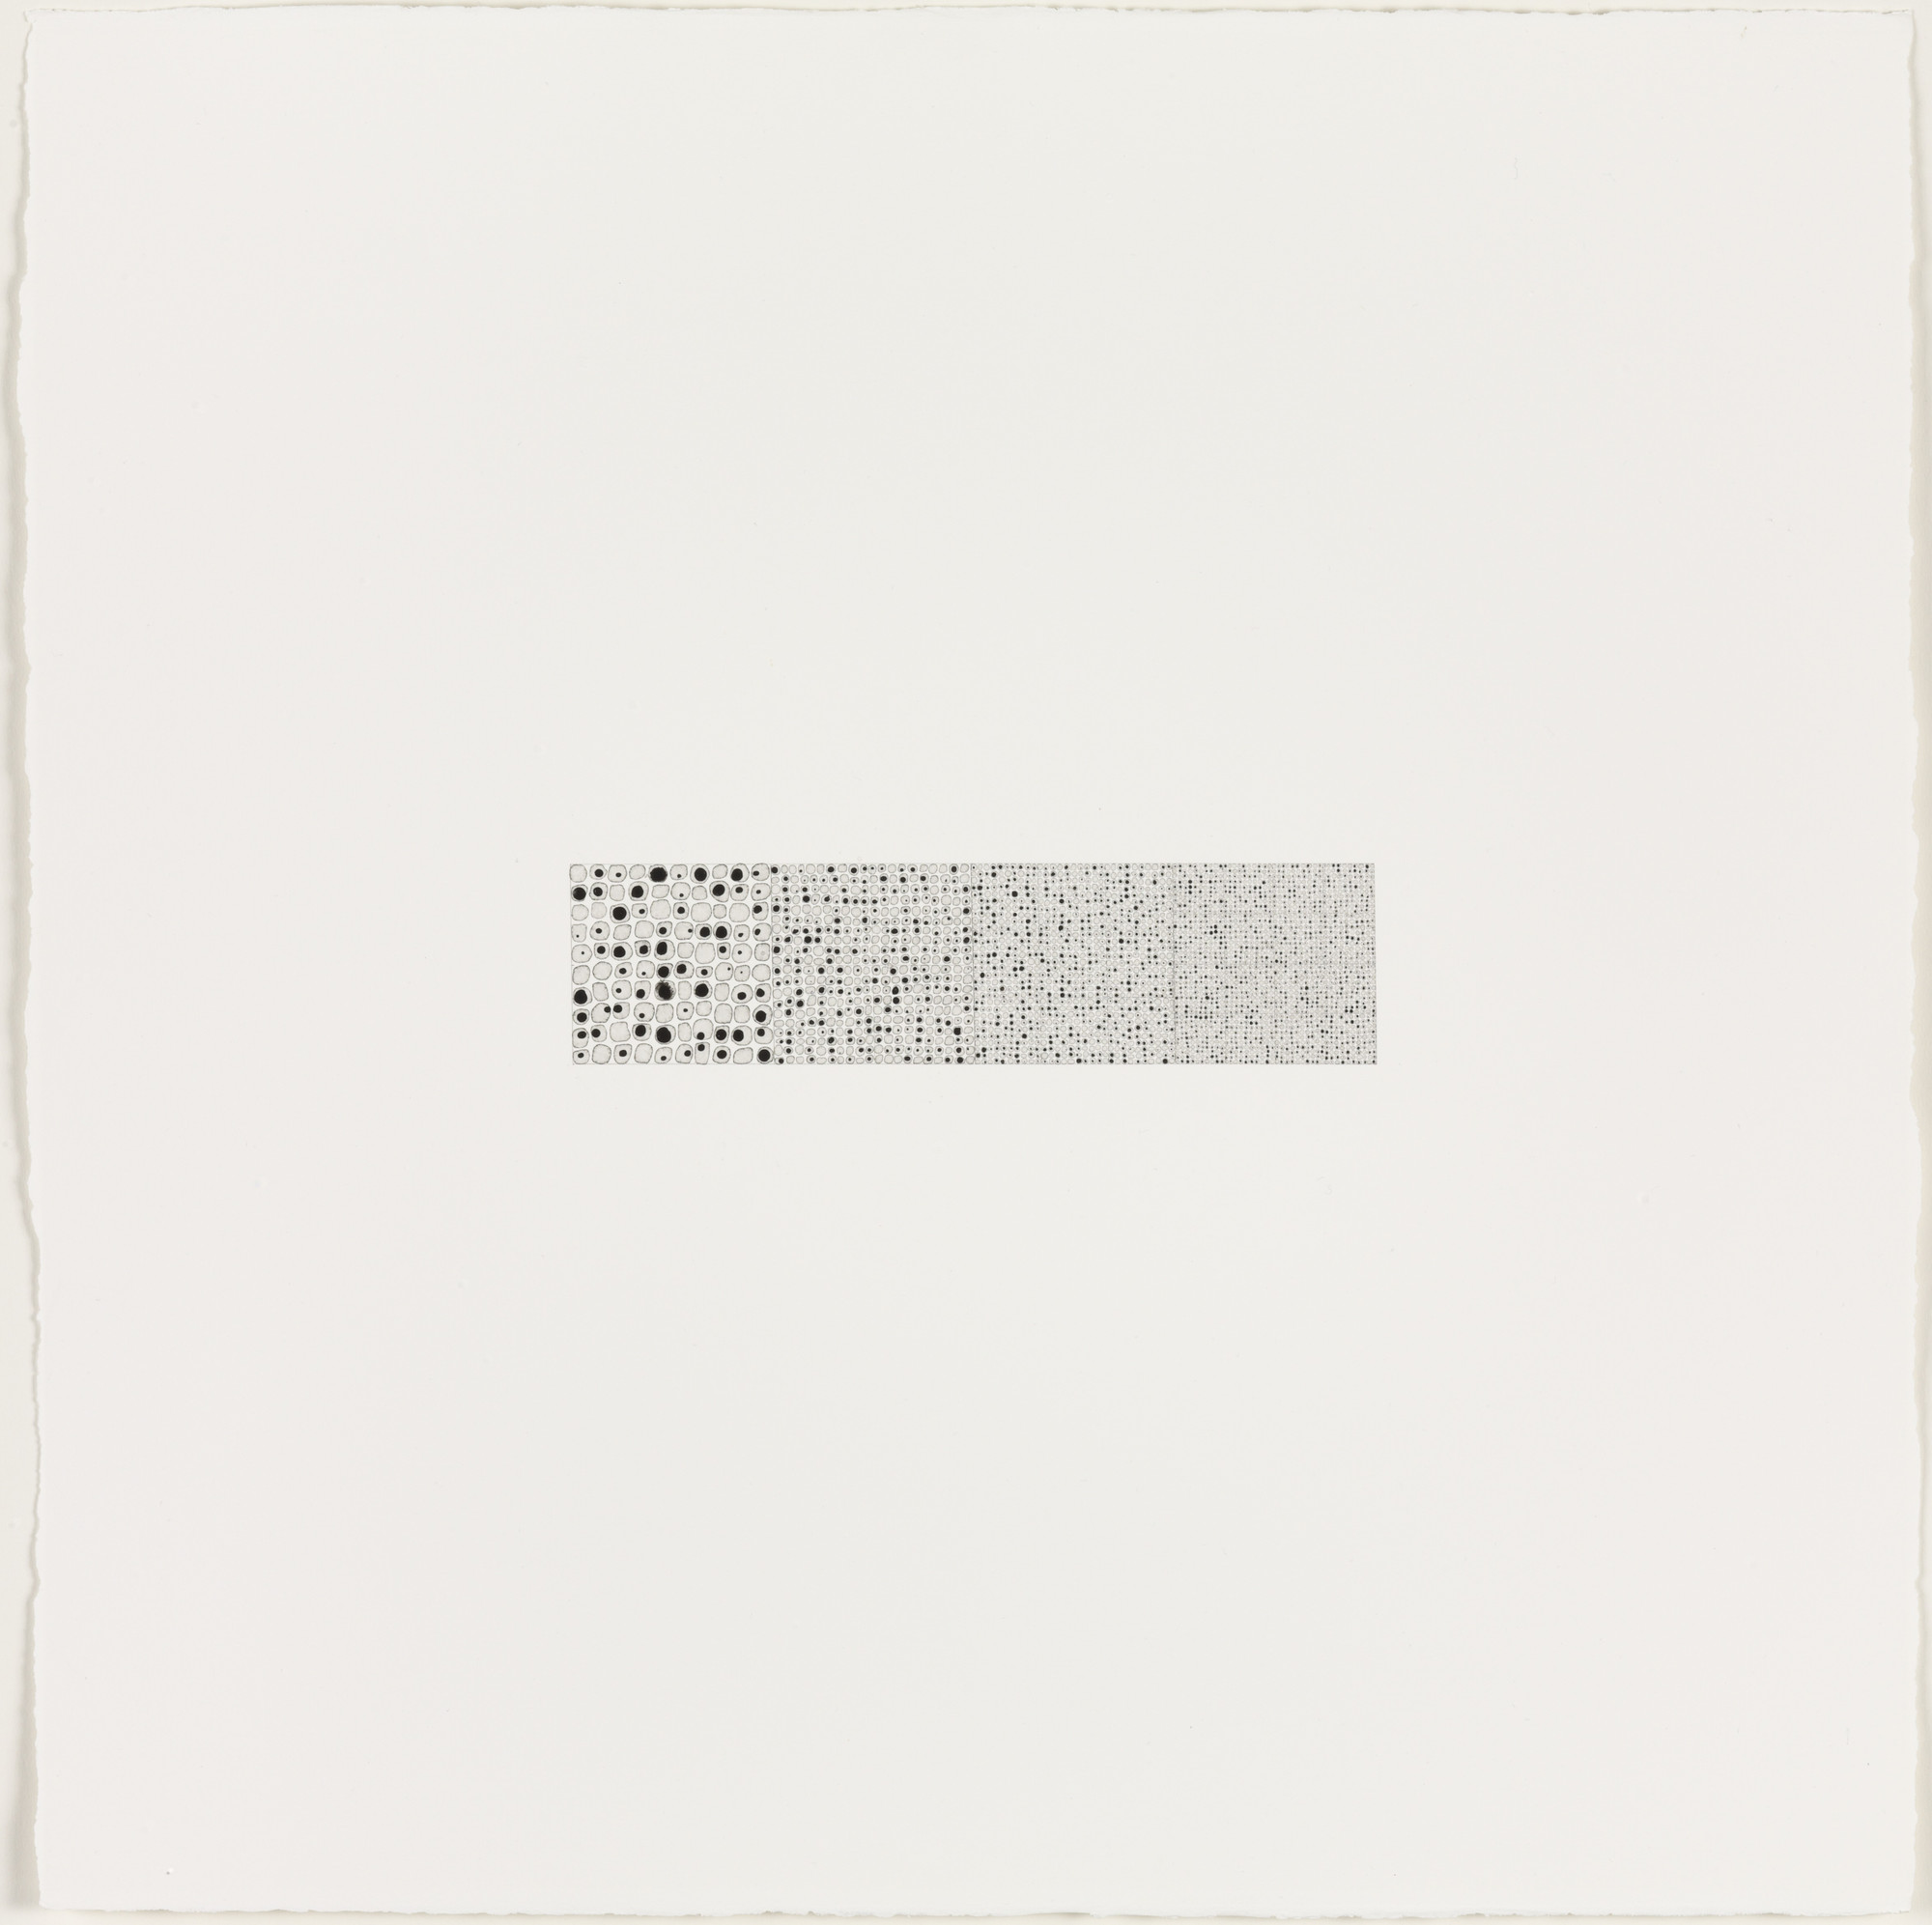 Teo González. Drawing #143 (3,000 Black on White 10 and direct 10 Gauge 1.5-2-3-6 mm). (2002)